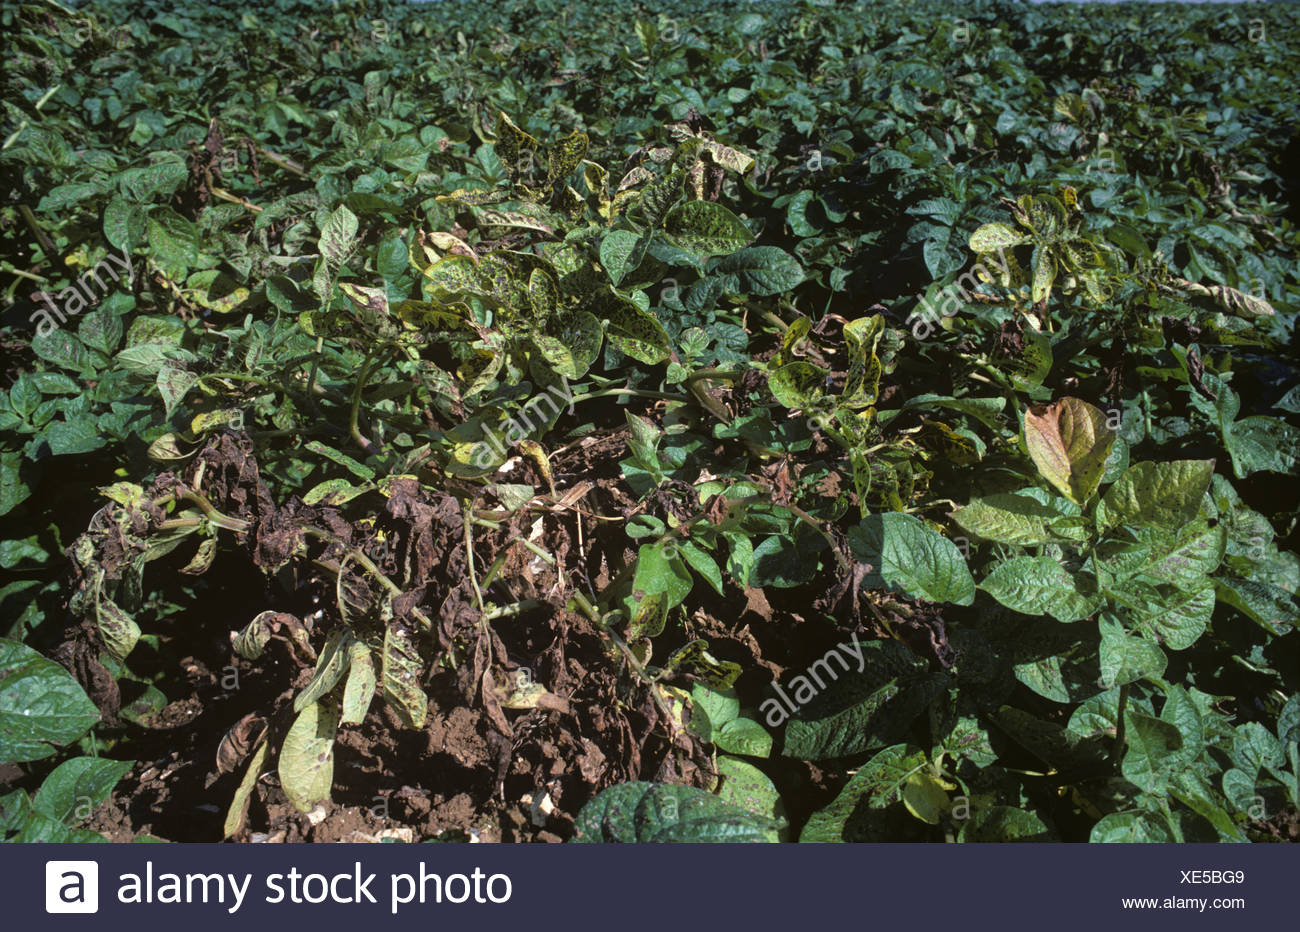 Potato crop suffering from severe magnesium deficiency - Stock Image